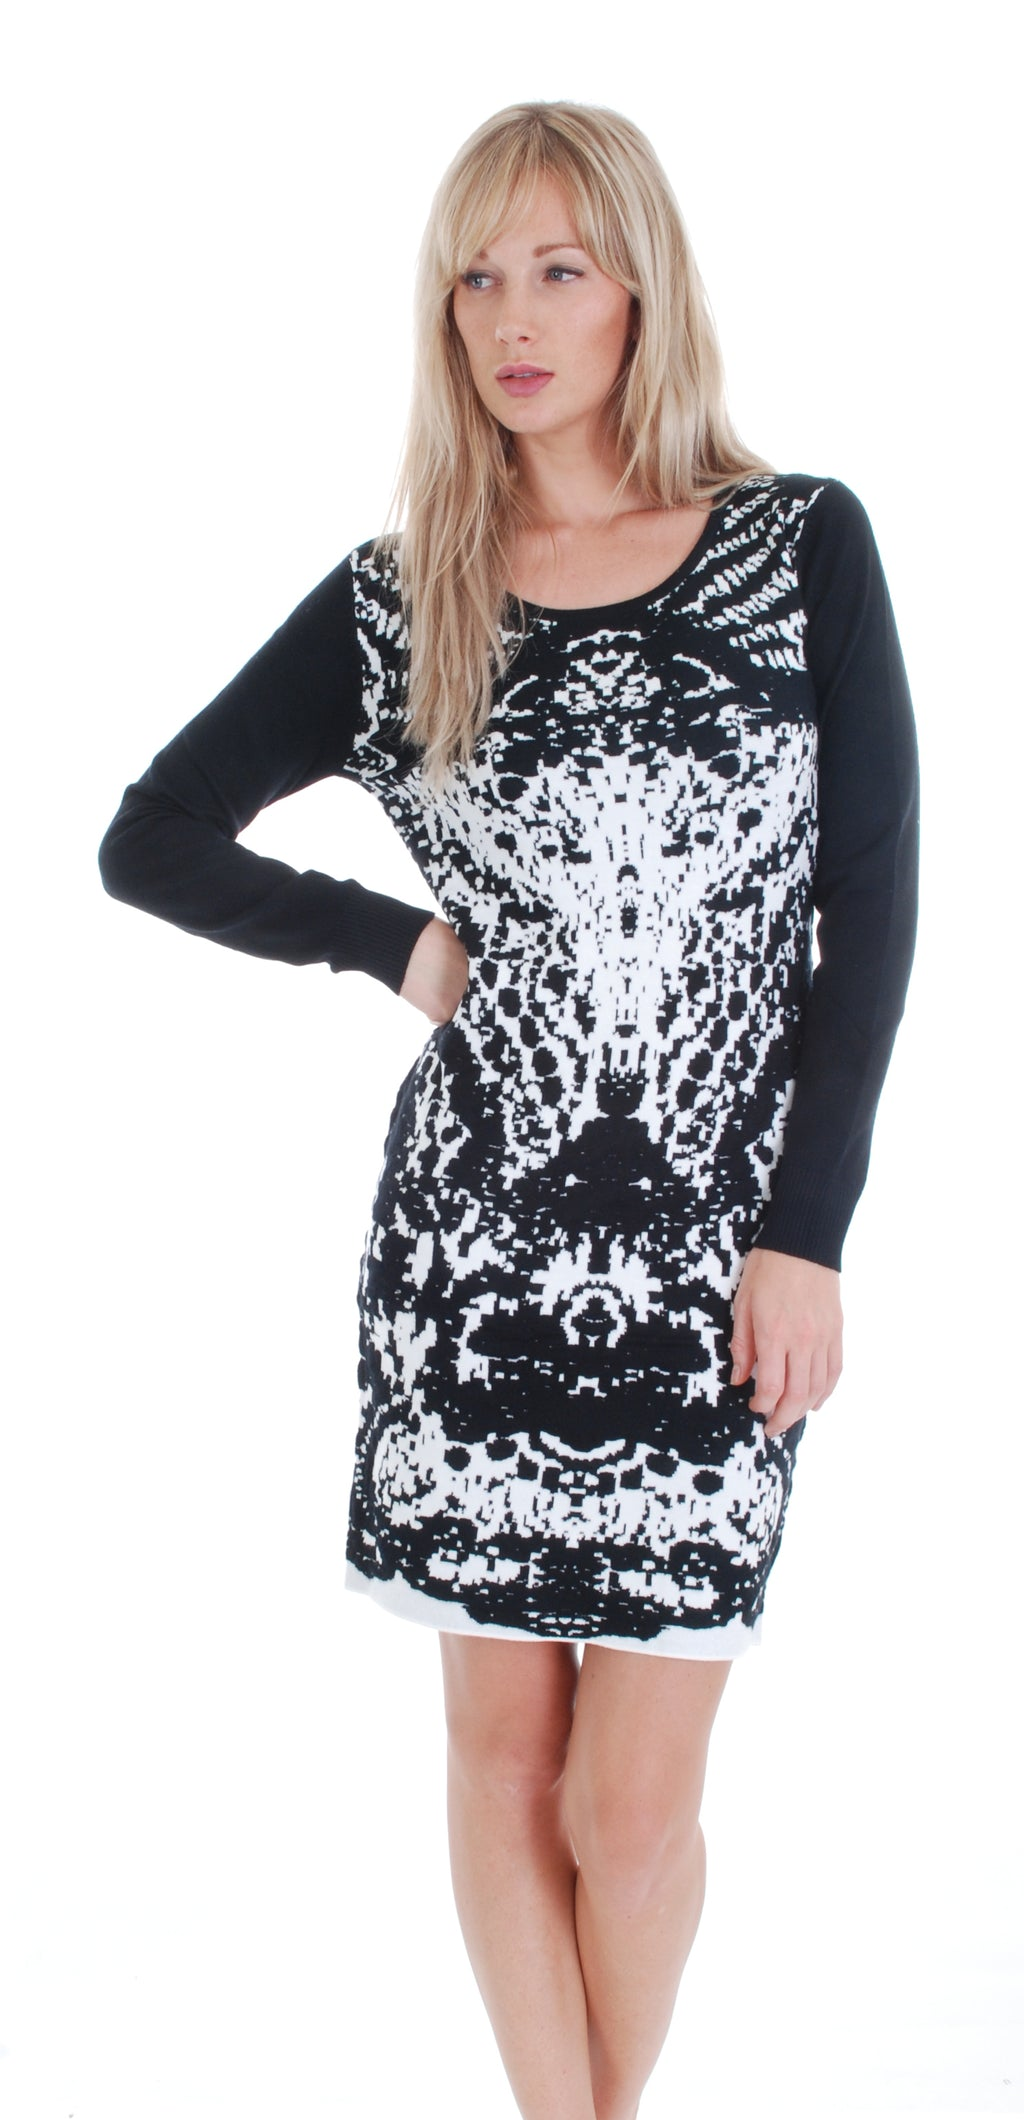 SWEATER DRESS 3281 - FTX Clothing